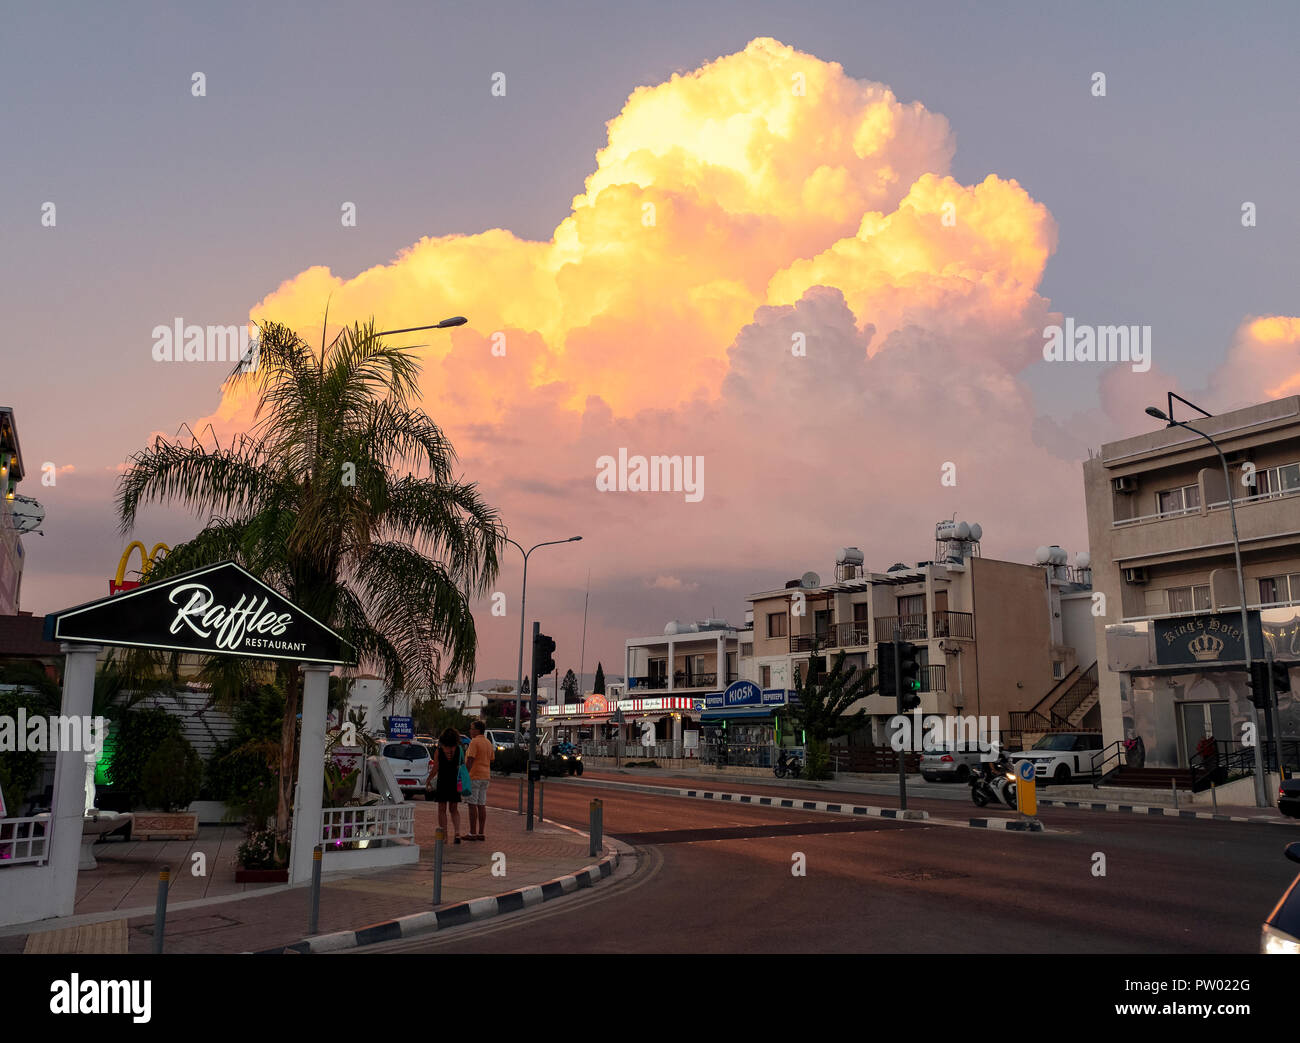 Clouds illuminated by the setting sun above Paphos, Cyprus. - Stock Image